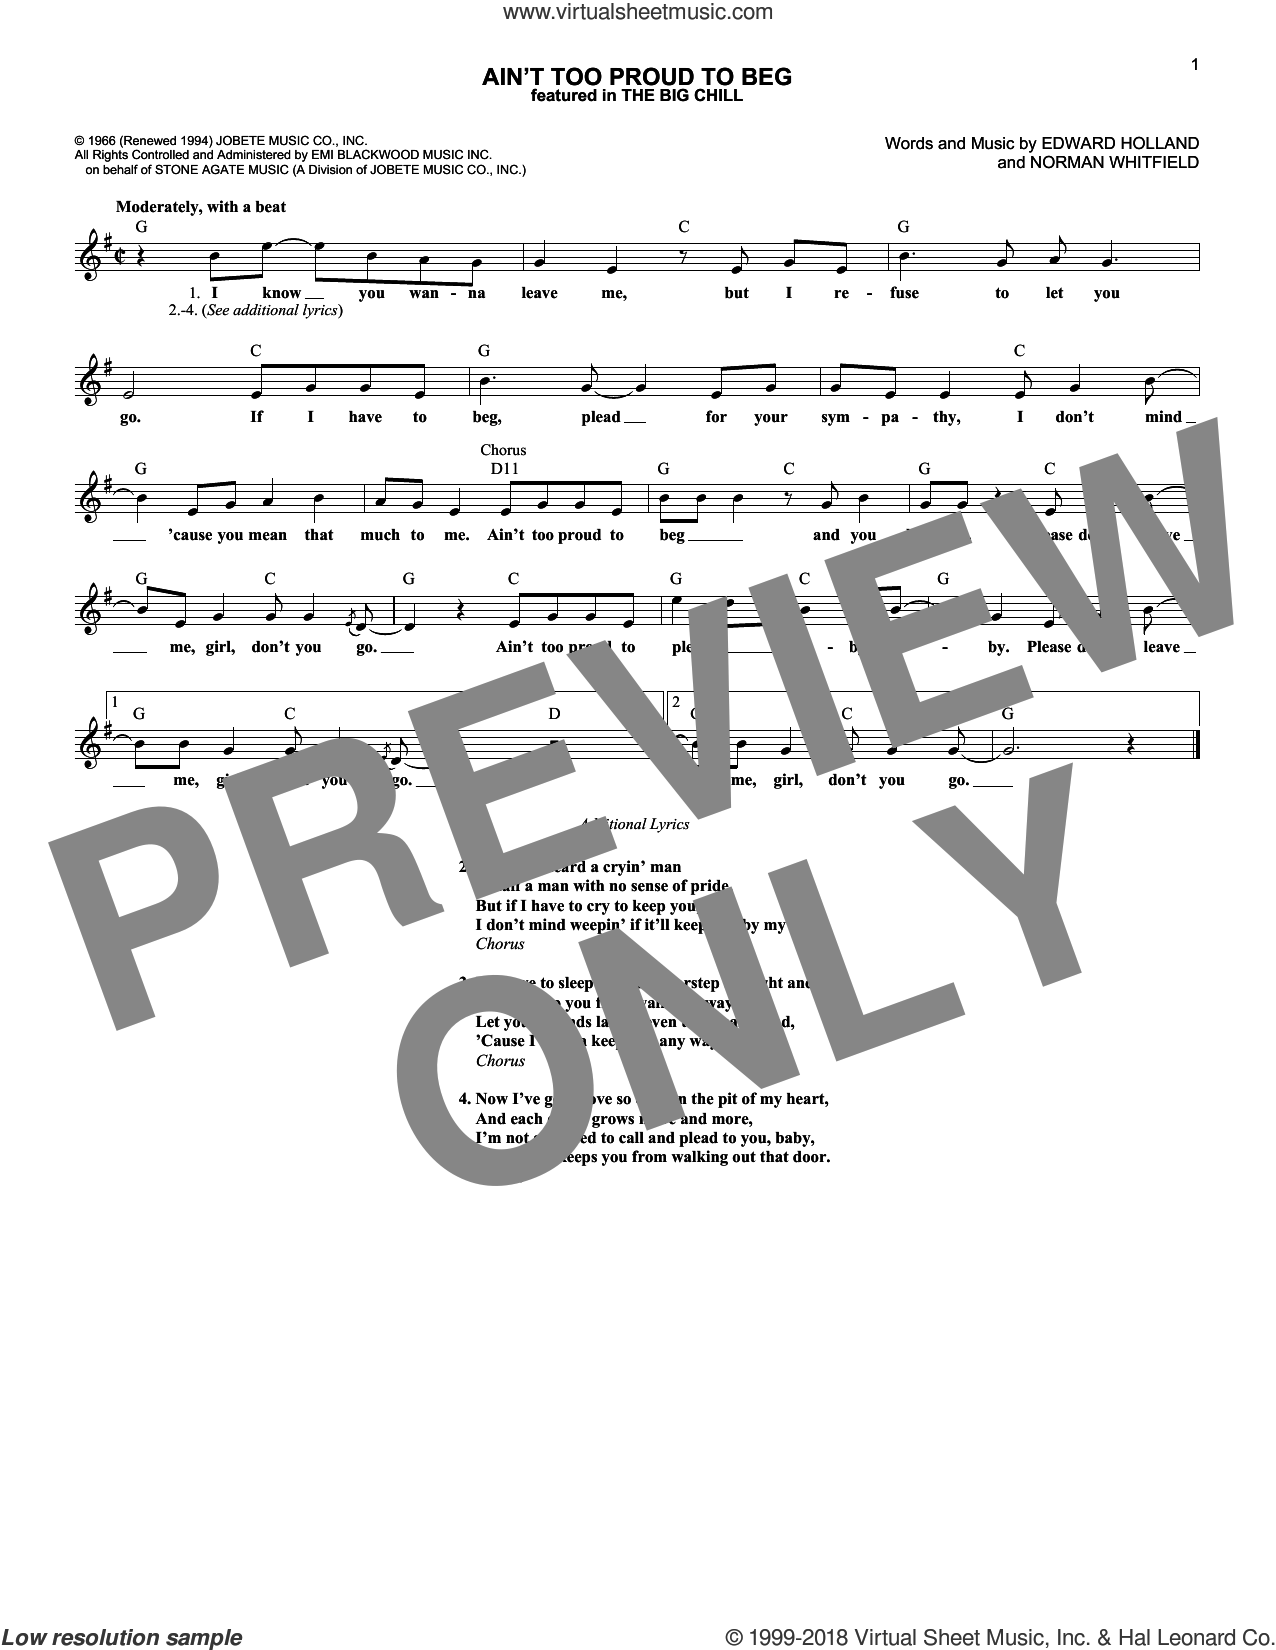 Ain't Too Proud To Beg sheet music for voice and other instruments (fake book) by The Temptations, The Rolling Stones, Edward Holland Jr. and Norman Whitfield, intermediate skill level